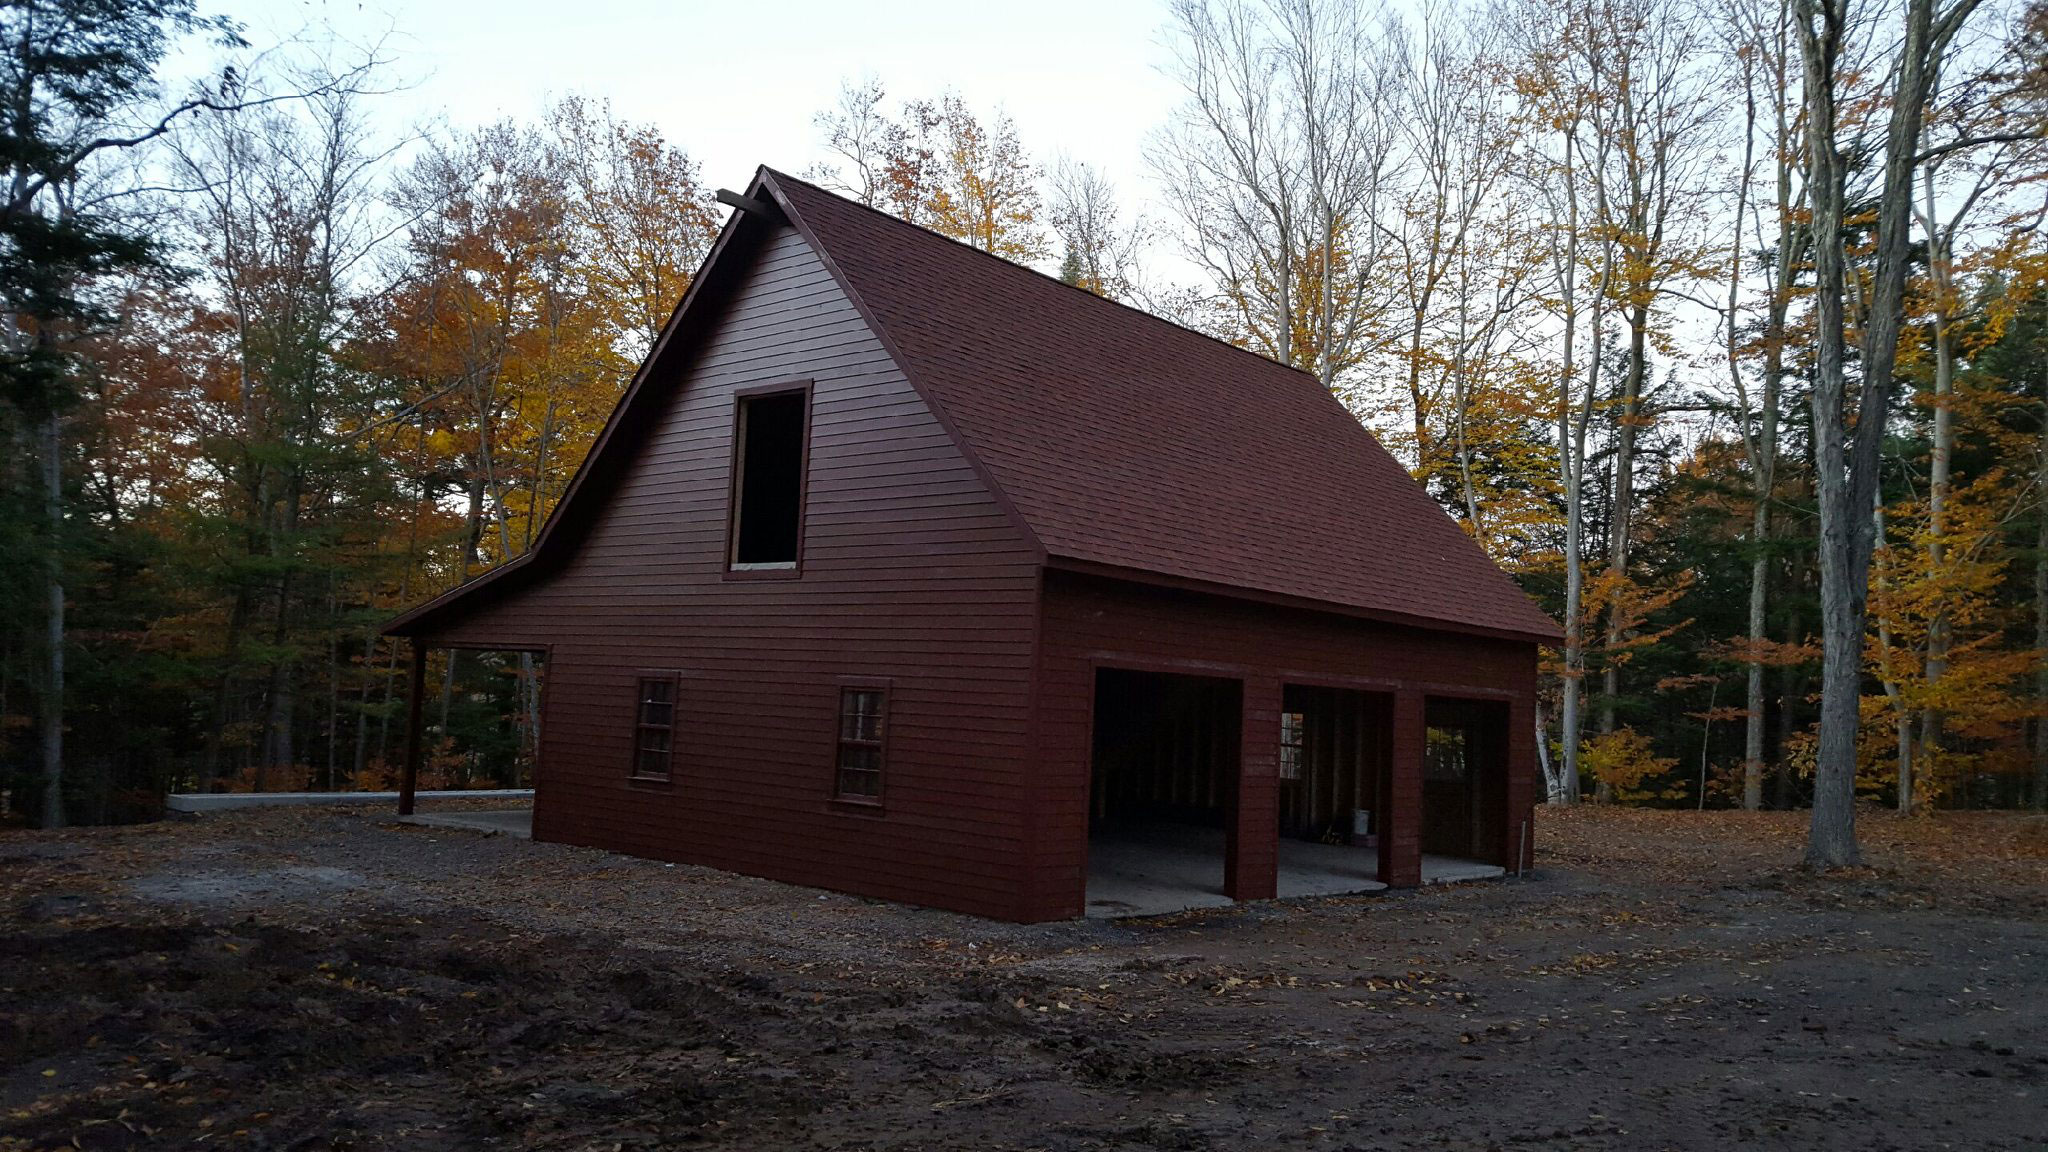 Amish Built Attic Car Garage With Loft Space: Built On-Site Custom Amish Garages In Oneonta, NY